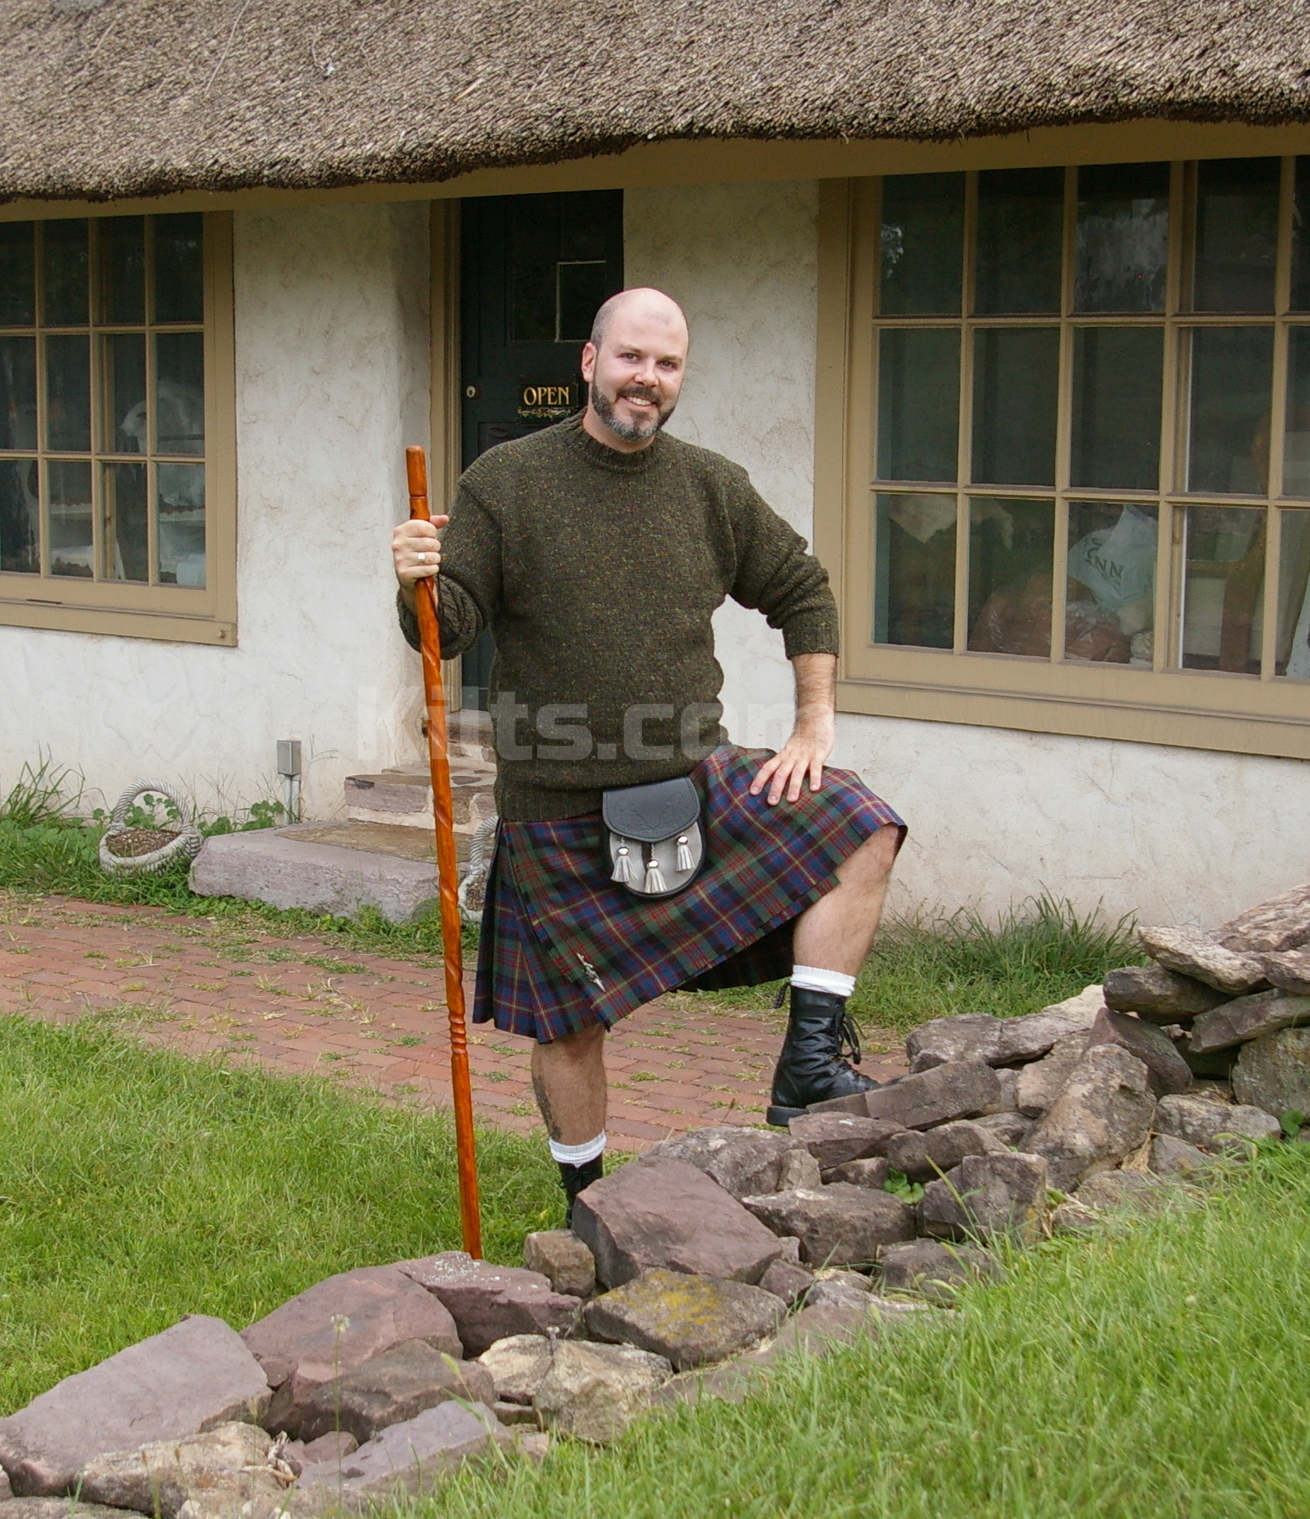 Check out our Scottish 5 Yard Kilt for sale.